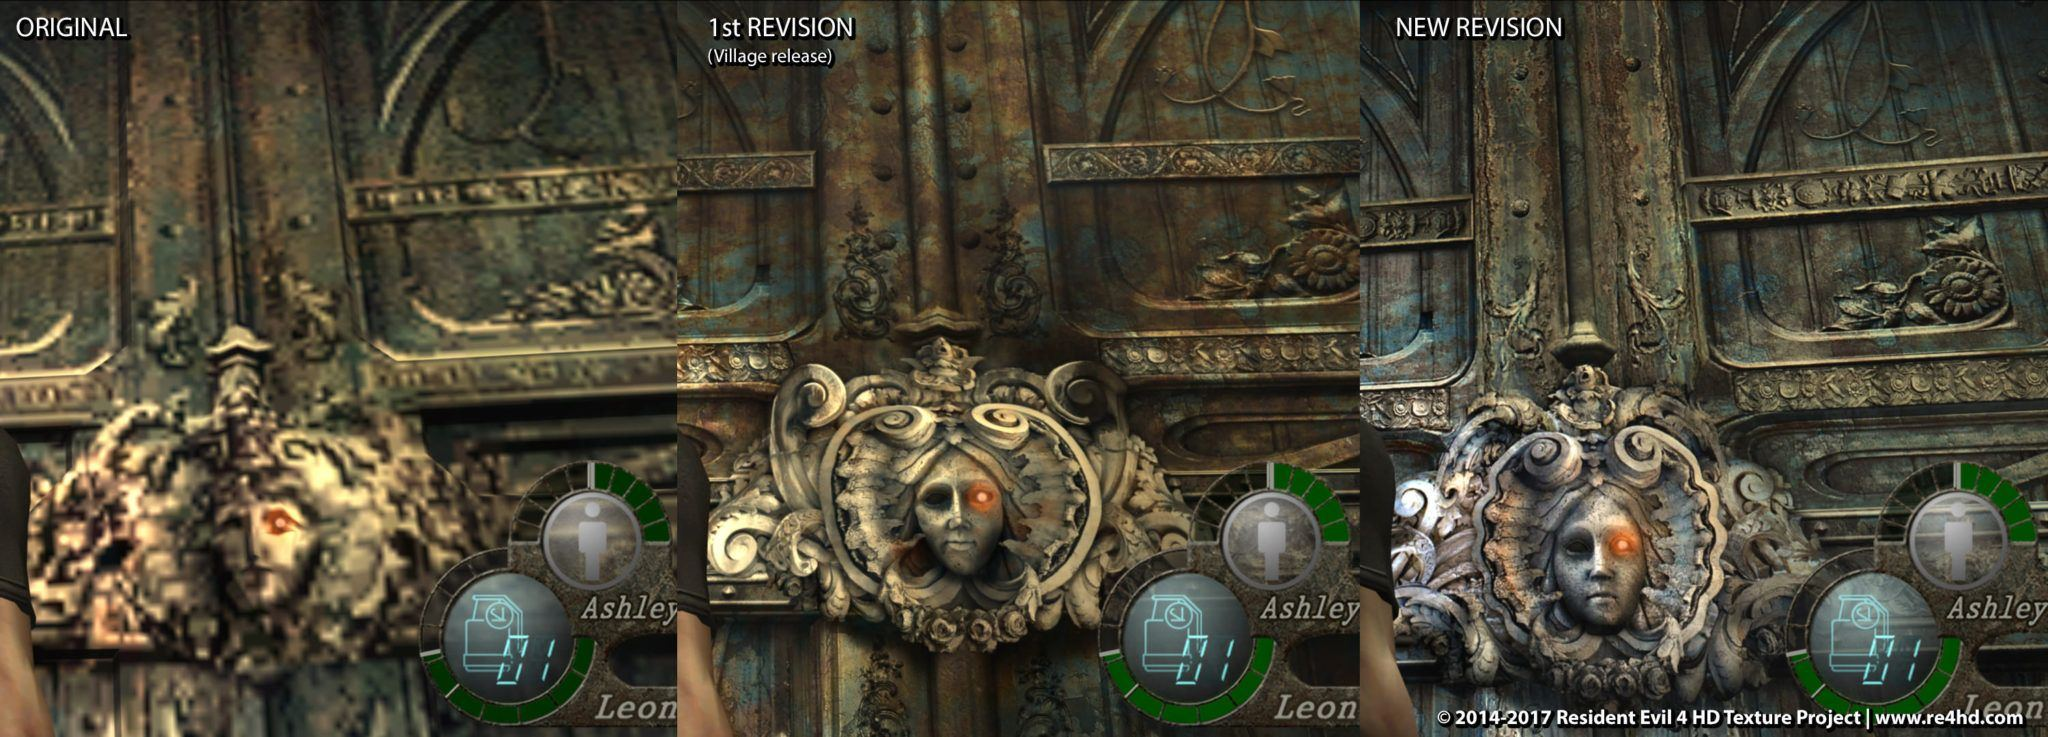 Resident Evil 4 HD Mod Project Revealed New Improved Screen